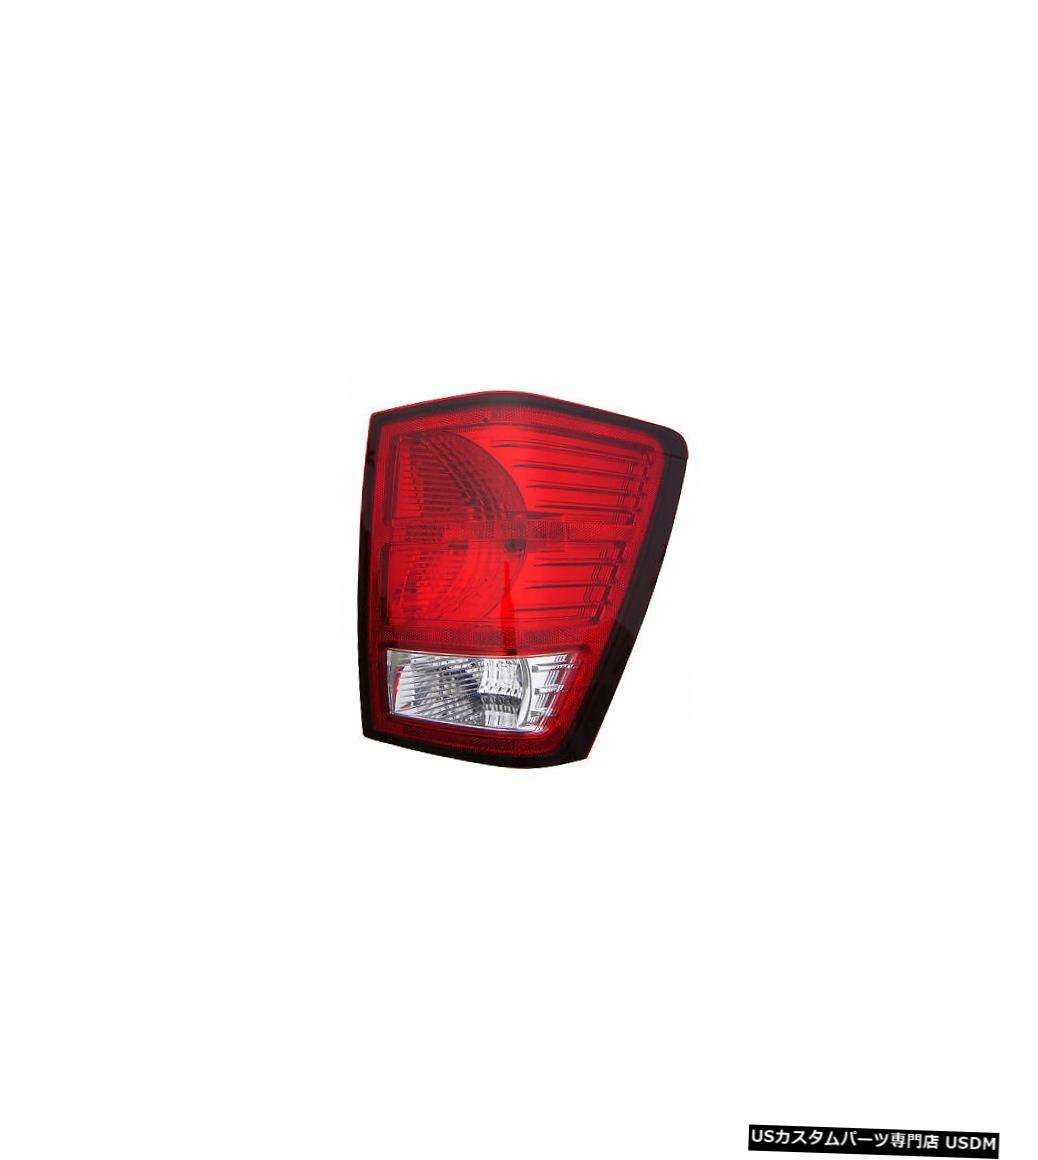 Tail light 07-10ジープグランドチェロキー乗客右用テールライトリアバックランプ Tail Light Rear Back Lamp for 07-10 Jeep Grand Cherokee Passenger Right